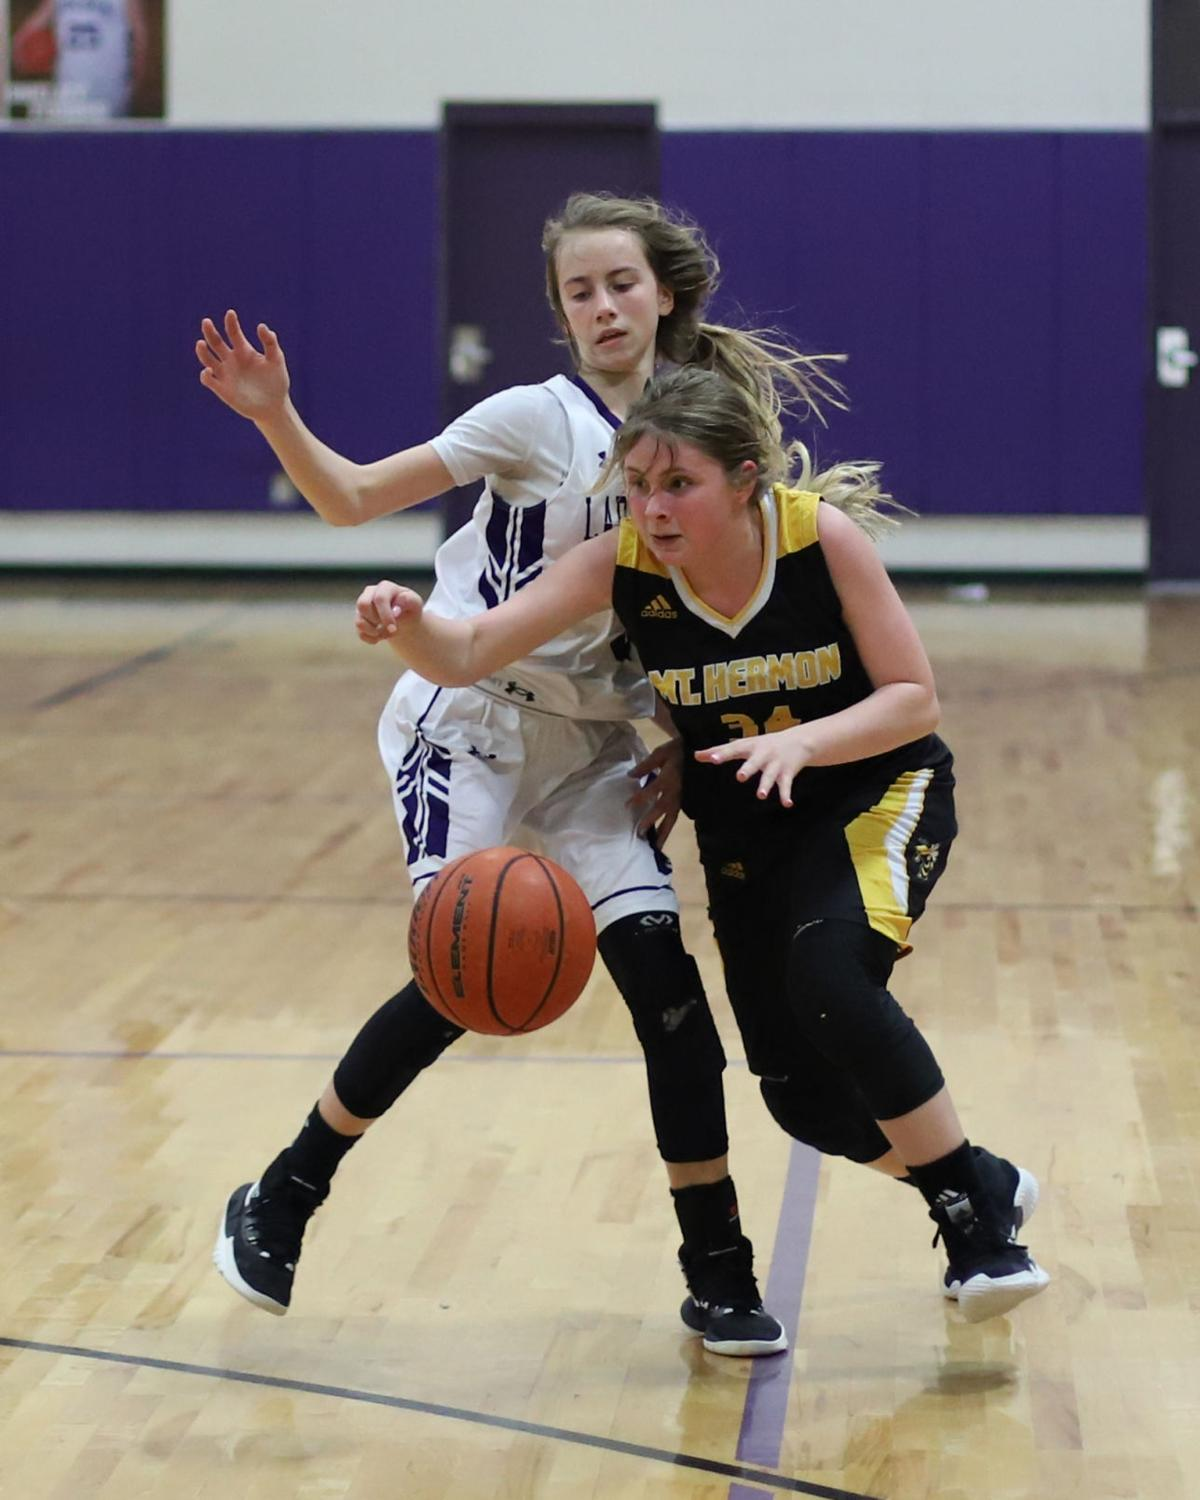 Mt. Hermon at Holden girls basketball Cambree Courtney